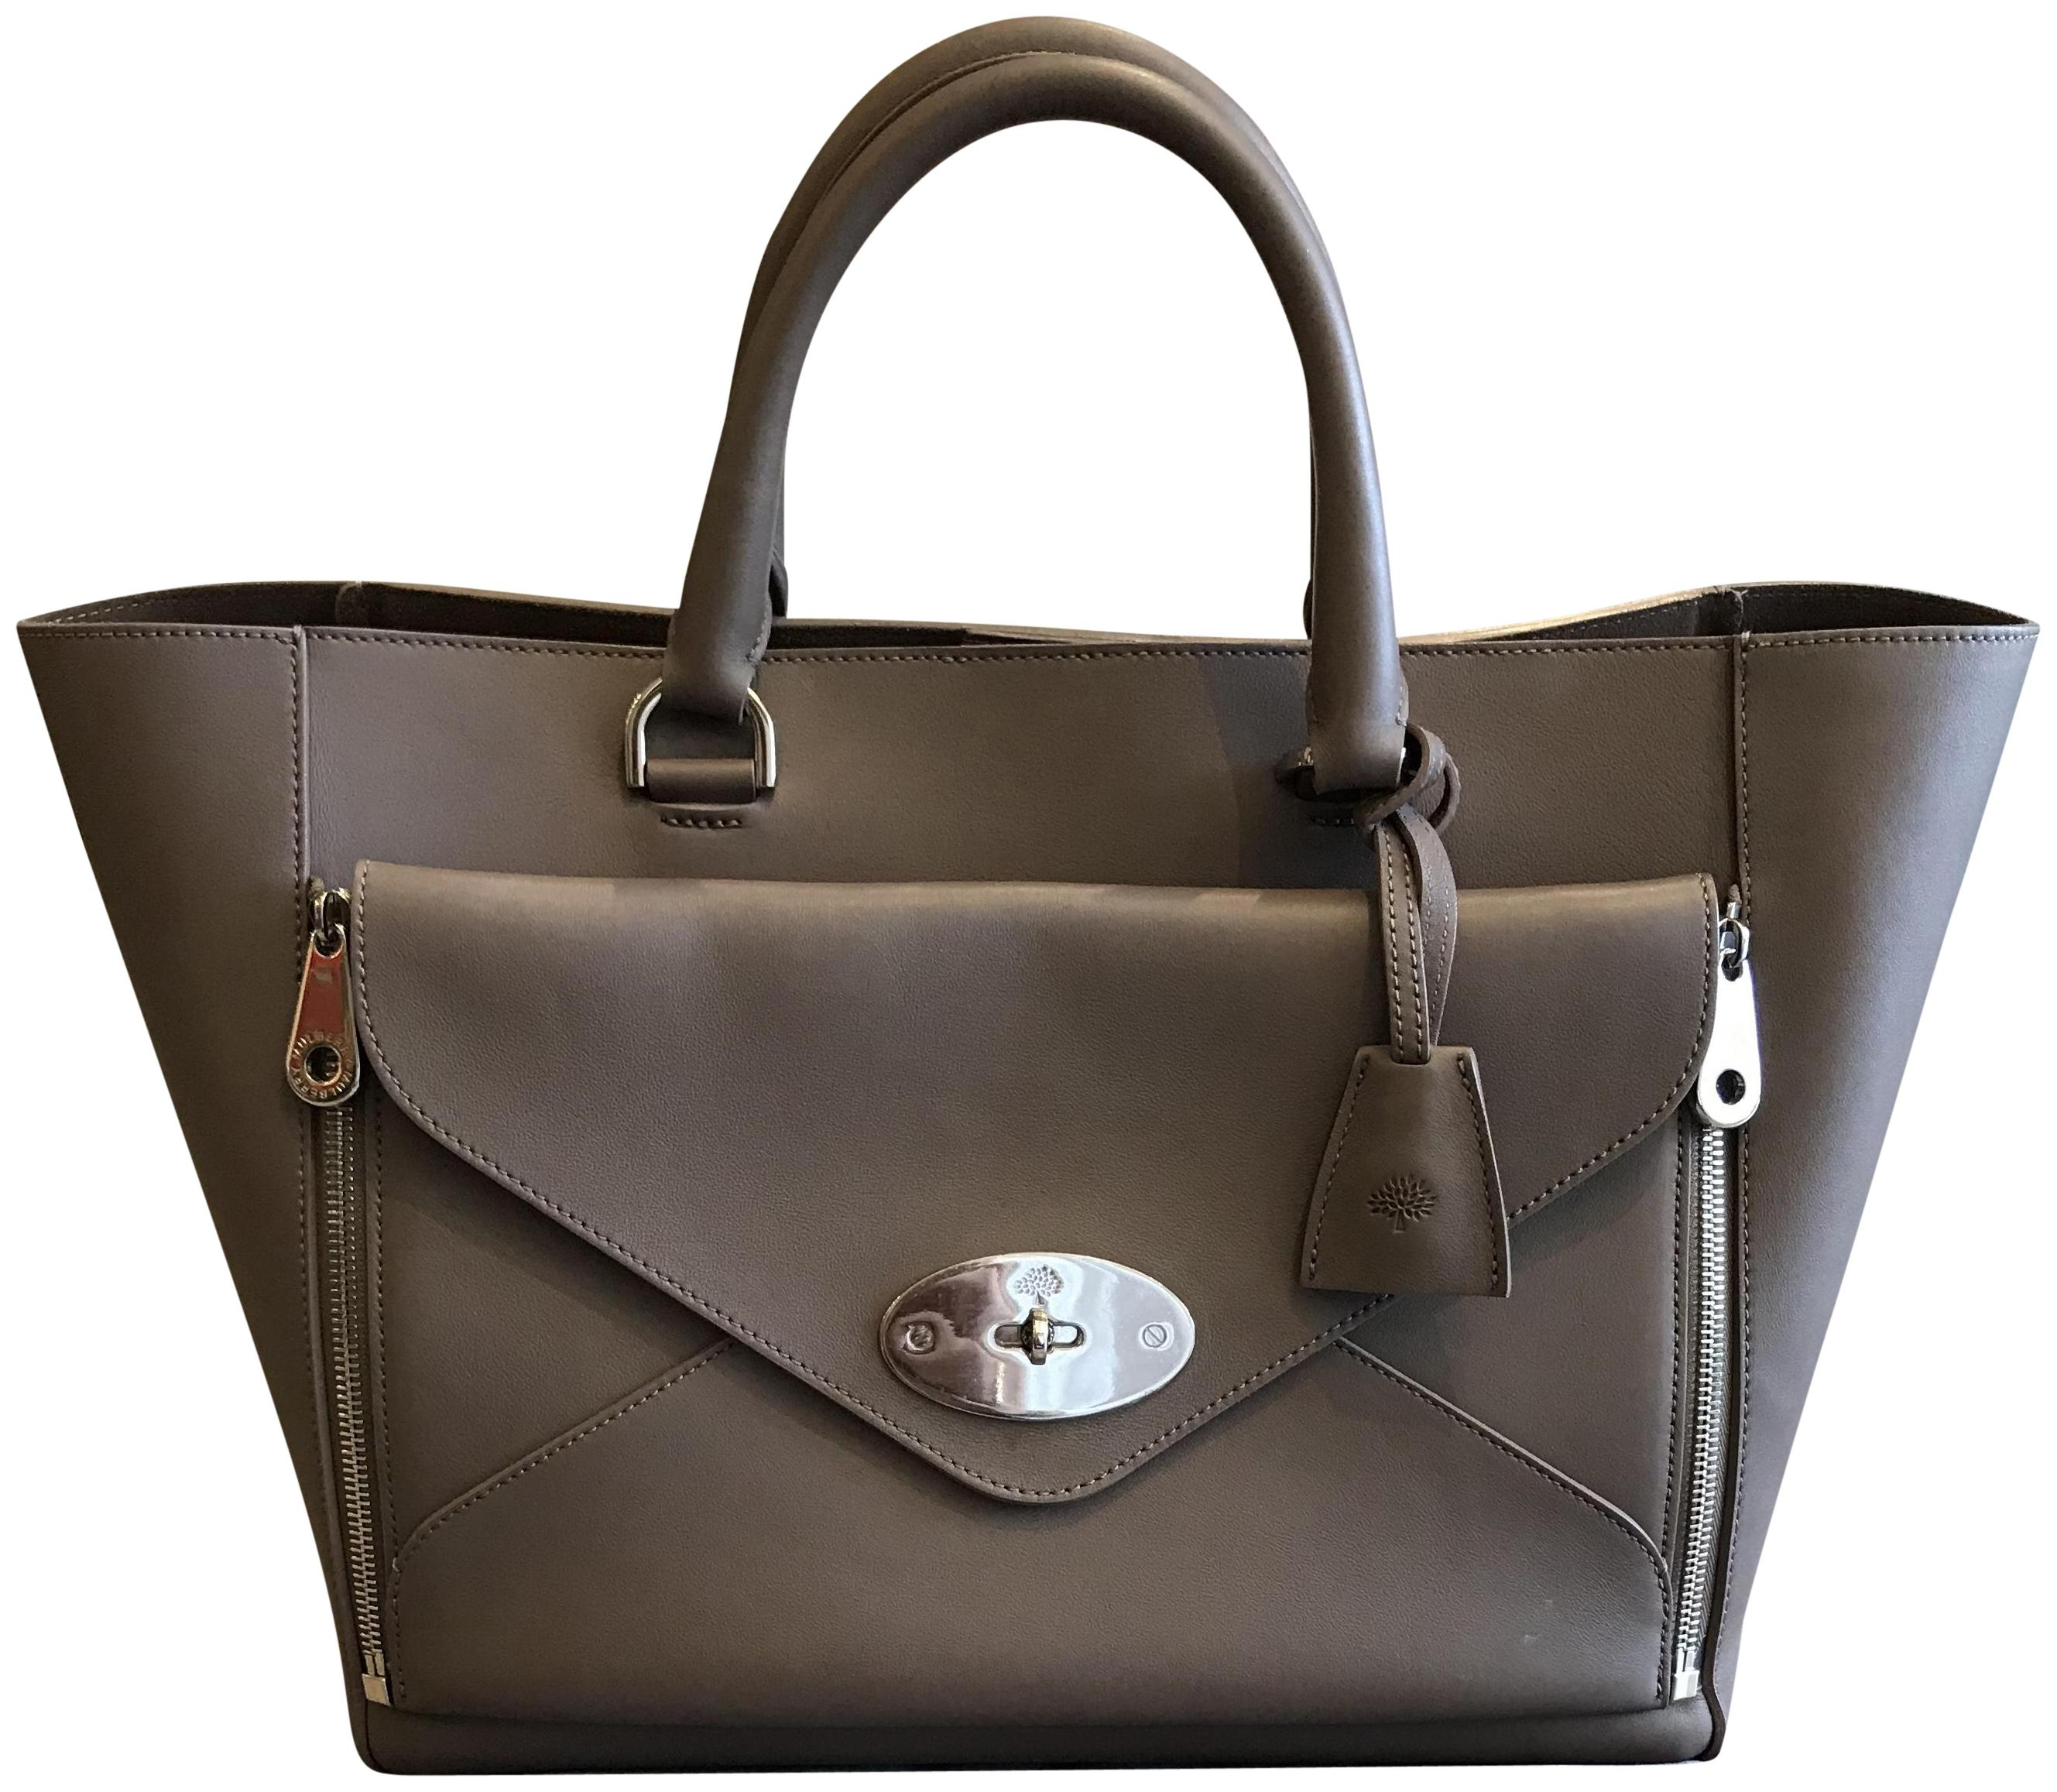 ... willow tote leather tote 006cc fa8af discount code for mulberry tote in  grey taupe 18c0b 15072 ... 7876cdac6d407